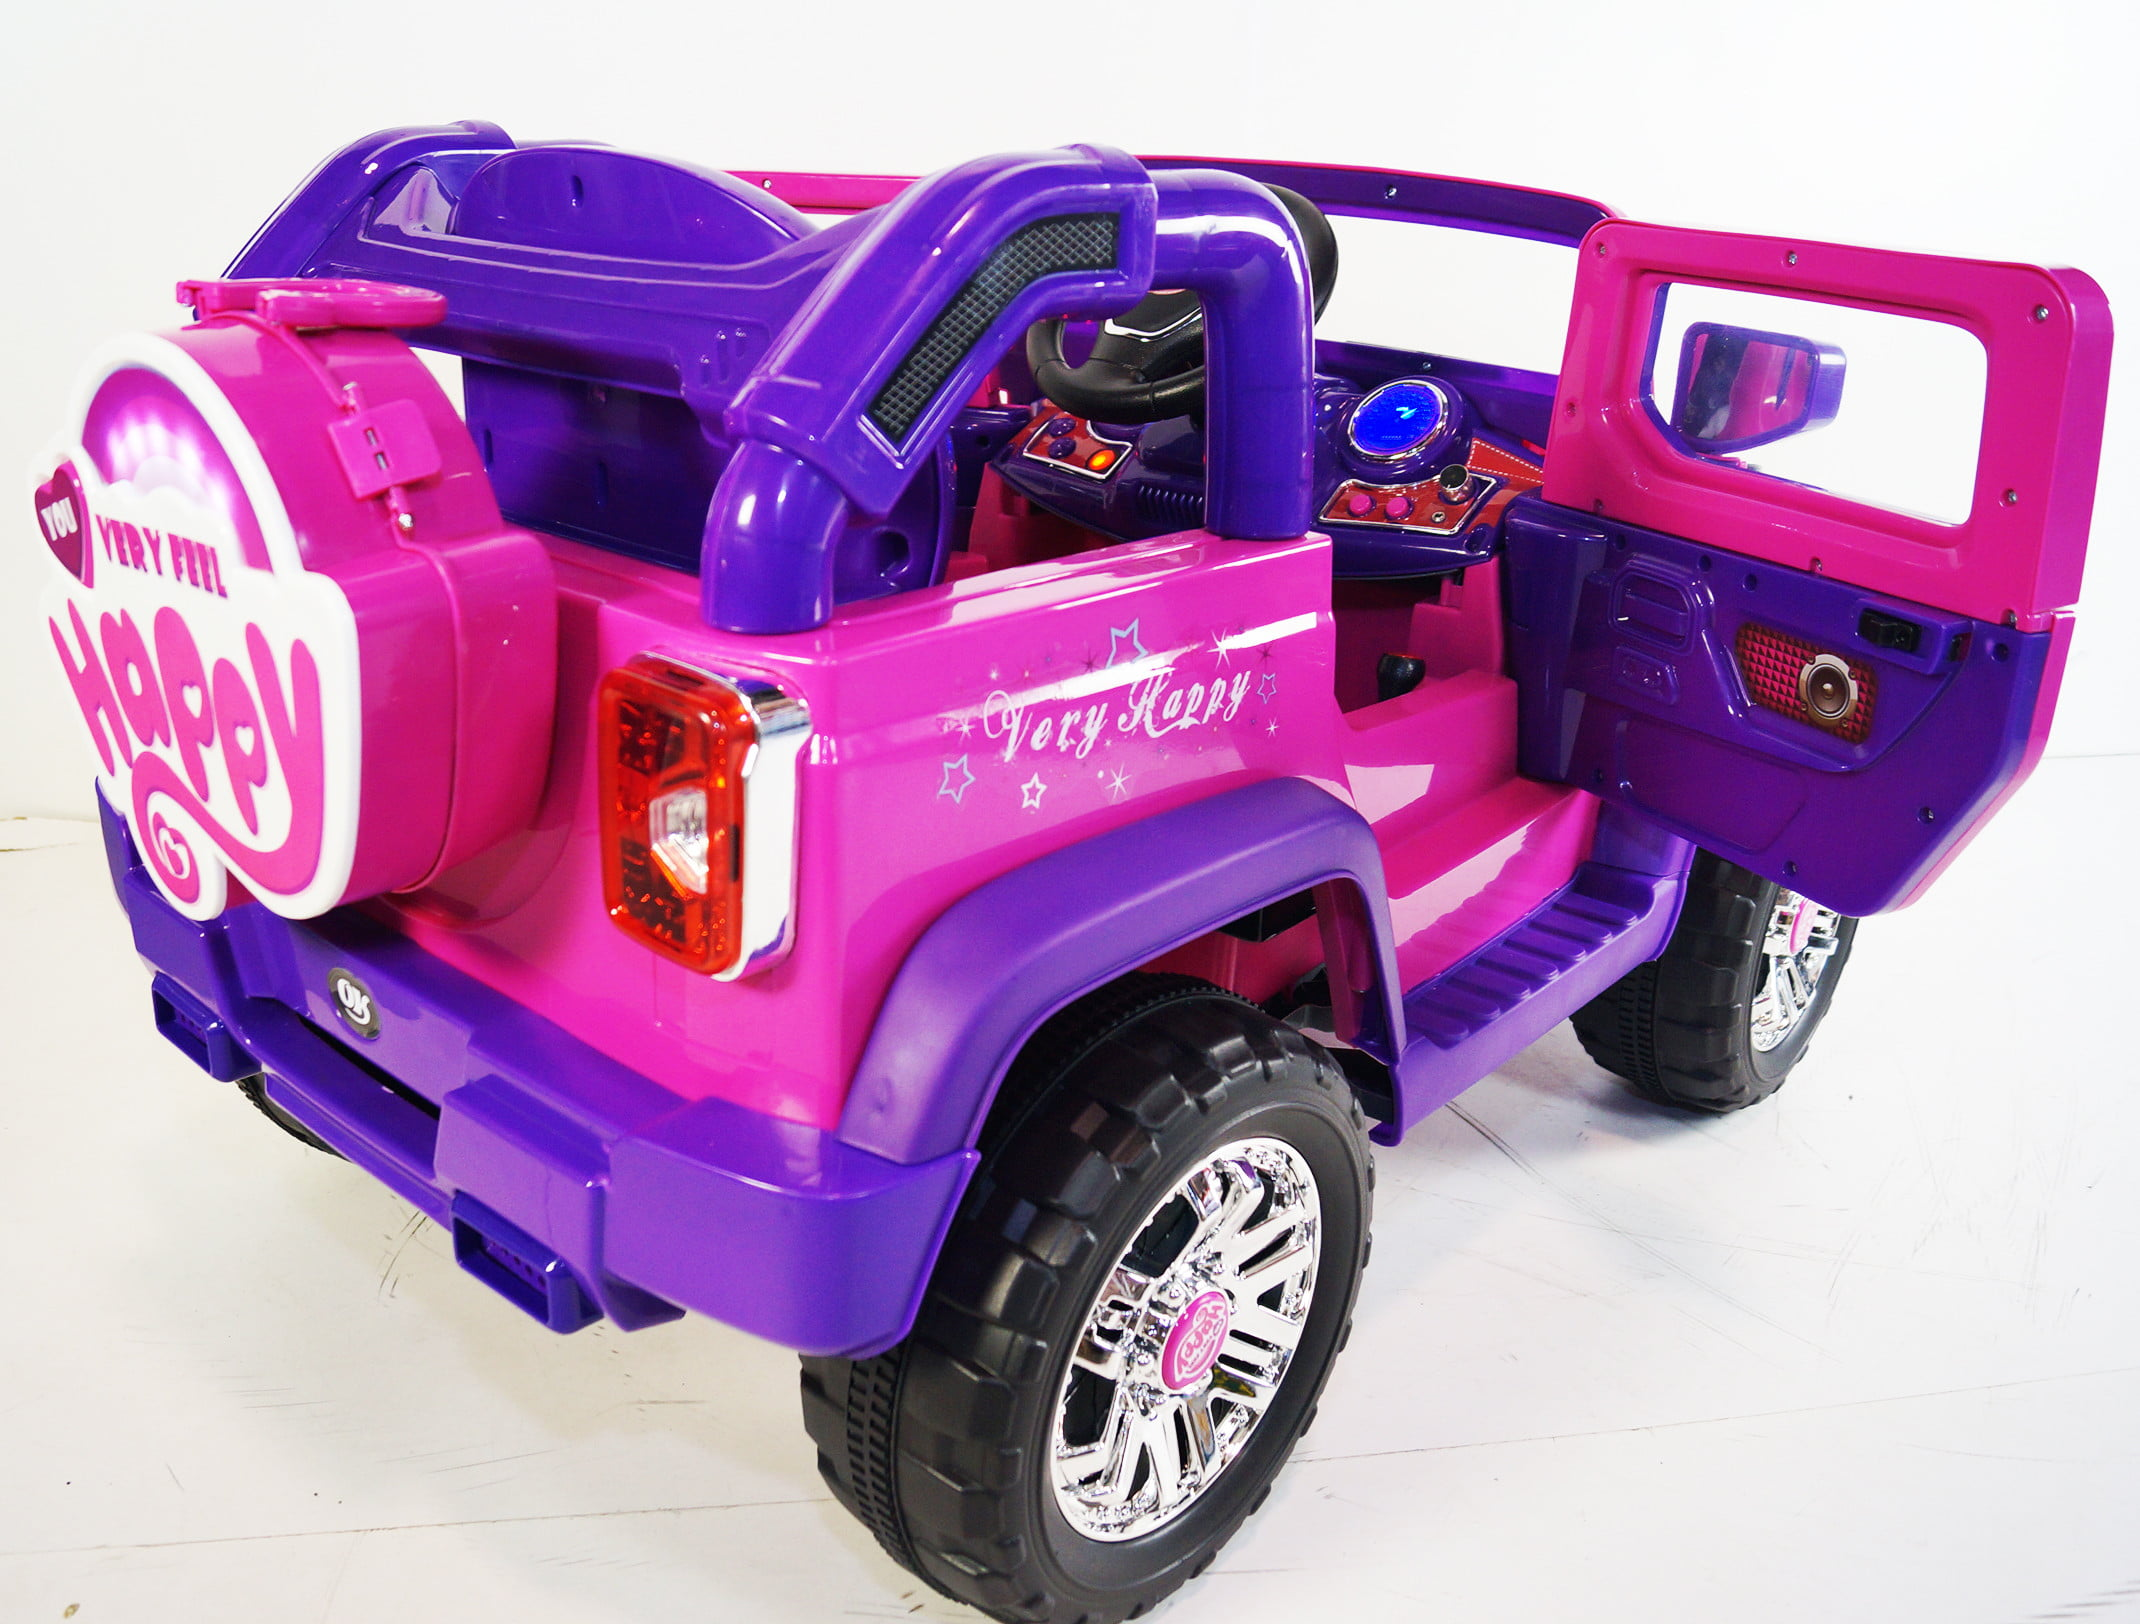 Upgraded Jeep Wrangler Style 12v Ride on Car for Kids with Remote ...